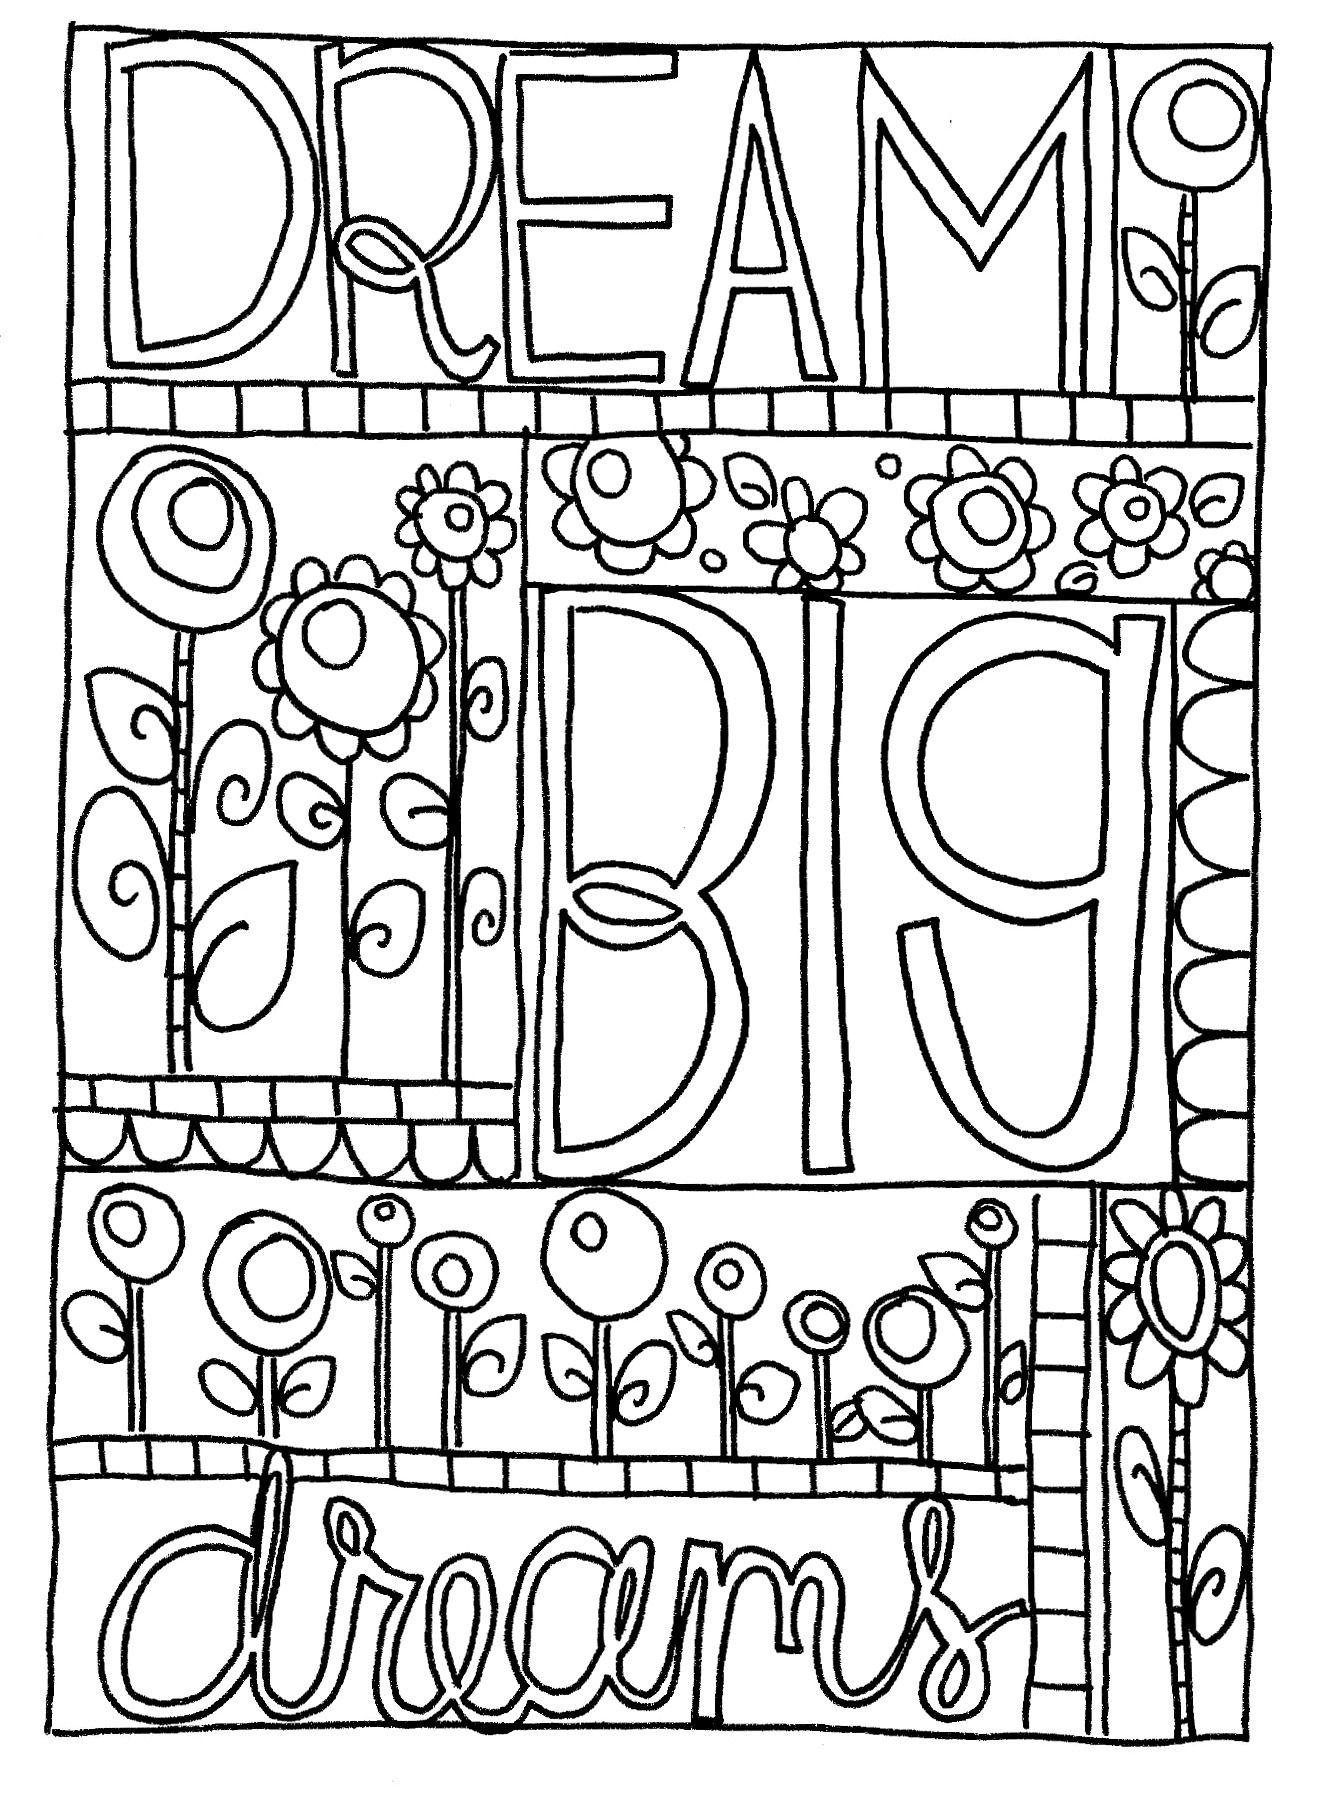 Dreambigdreams Jpg 1320 1808 Coloring Pages Inspirational